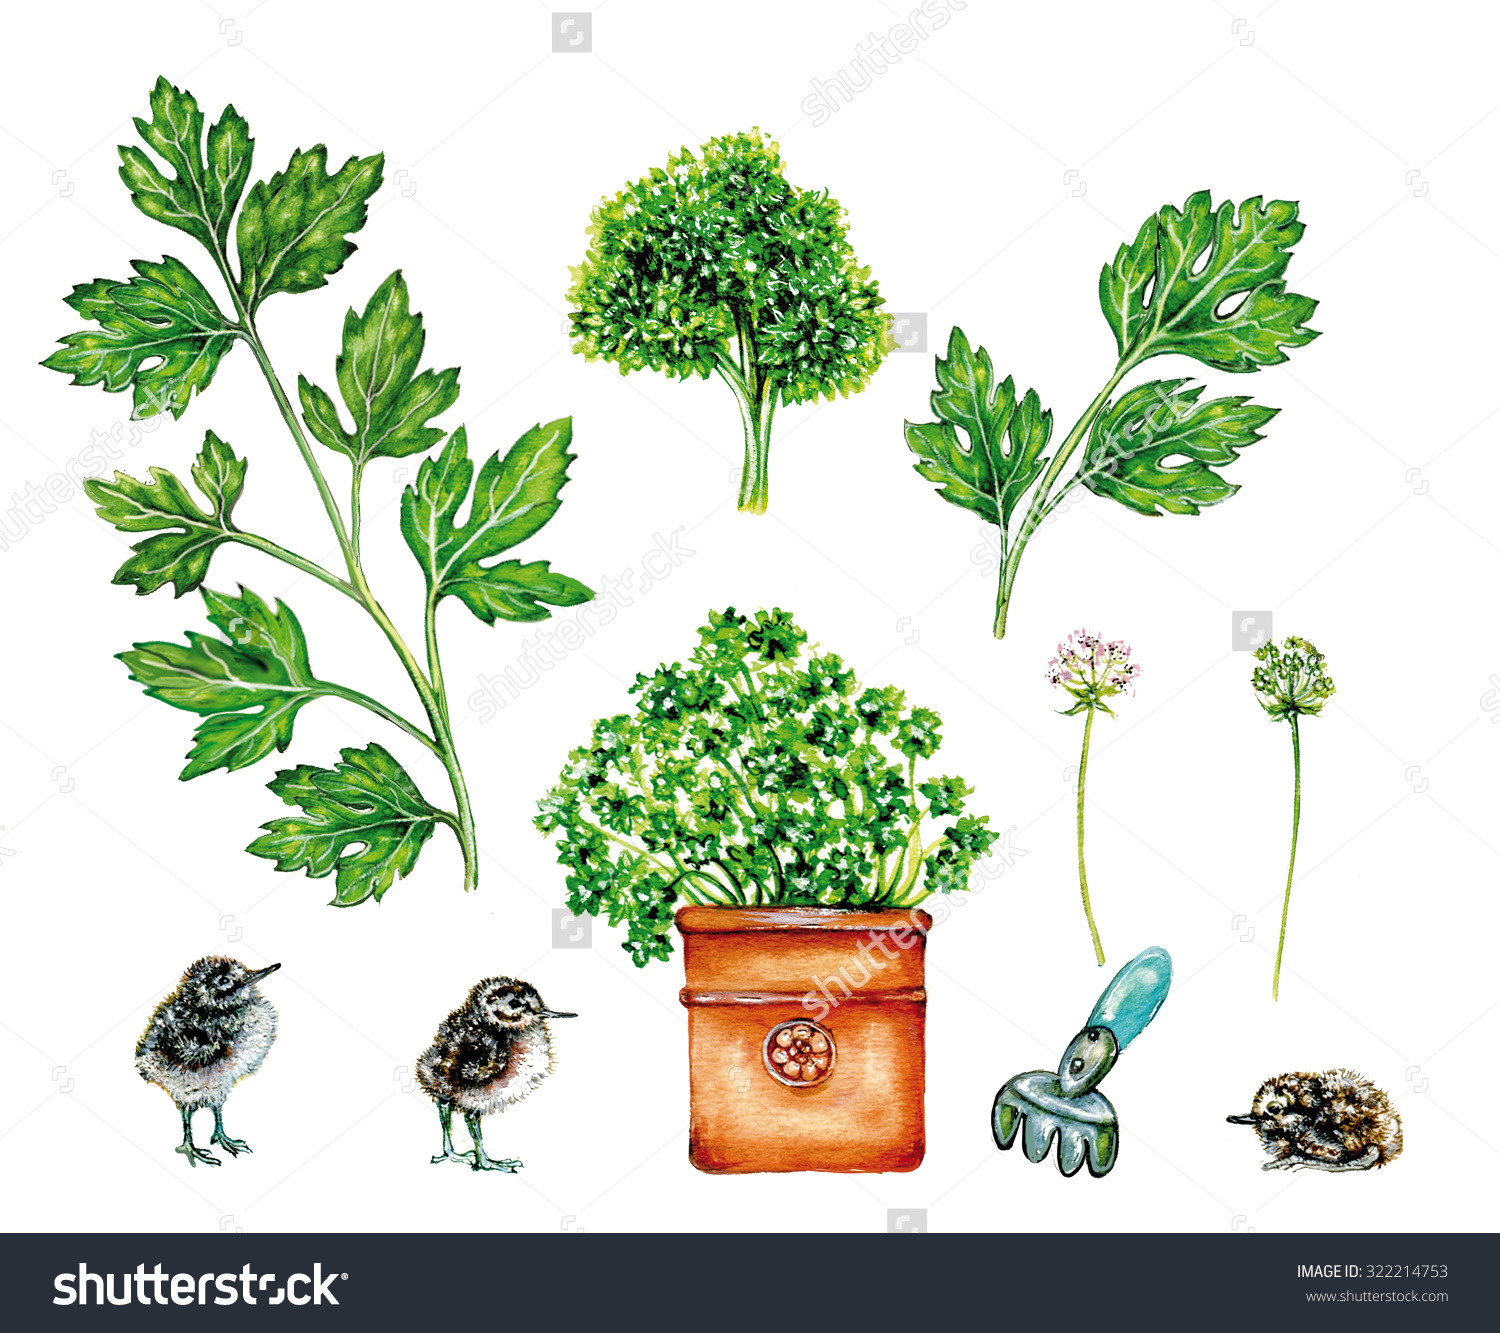 Realistic Illustration Parsley Plant Petroselinum Crispum Stock.